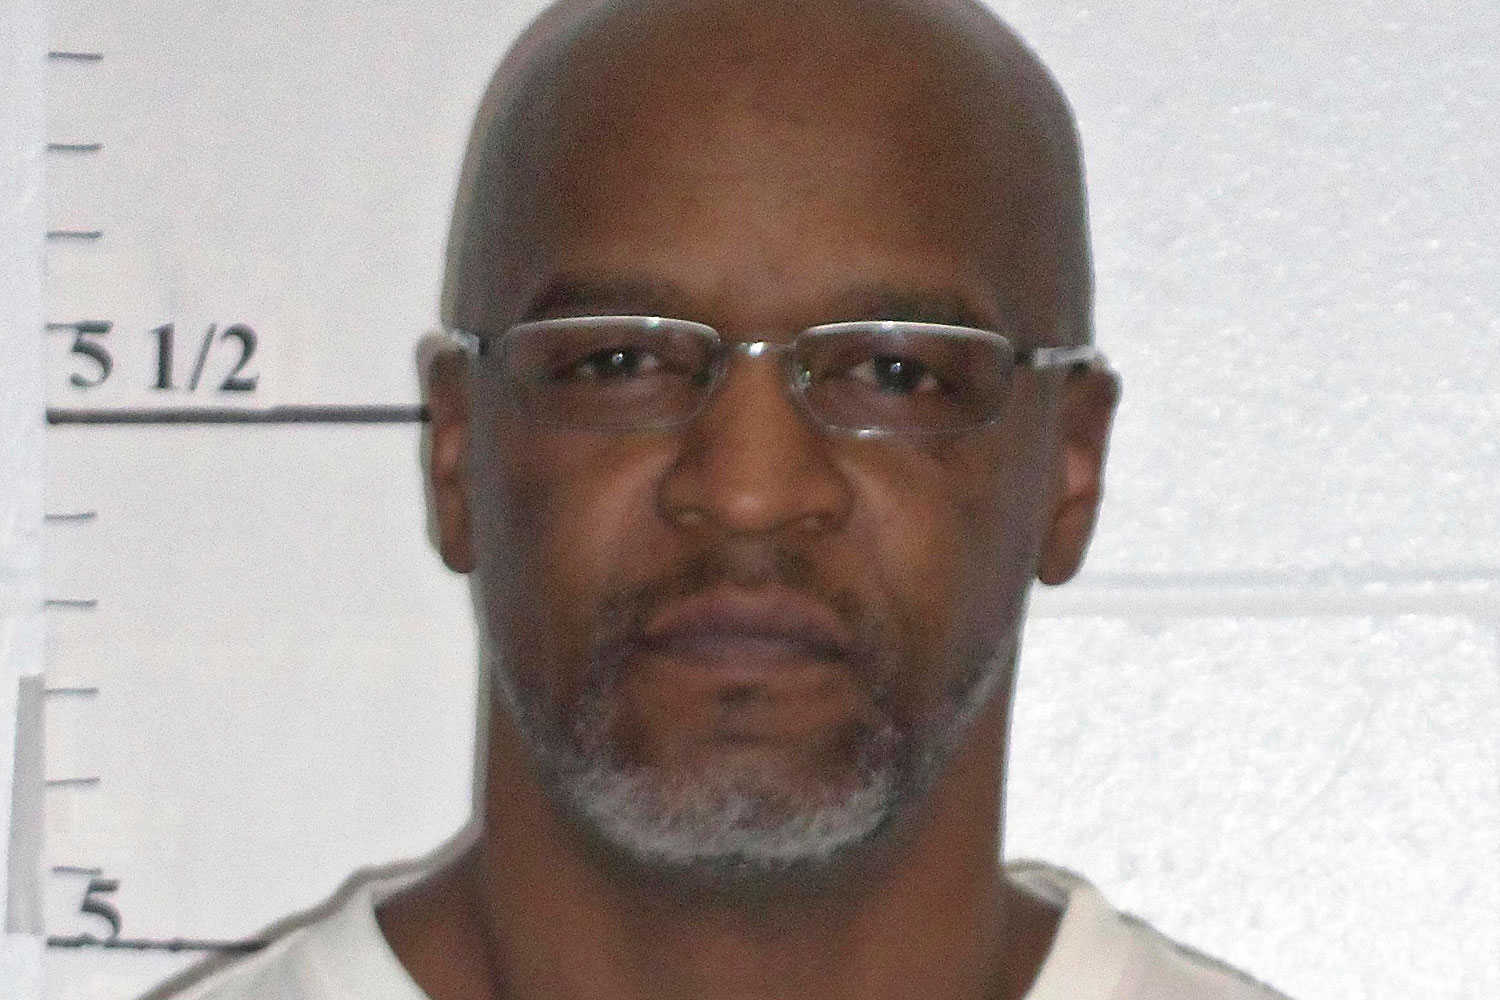 Convicted killer Michael Taylor is shown in this Missouri Department of Corrections photo released on Feb. 25, 2014.